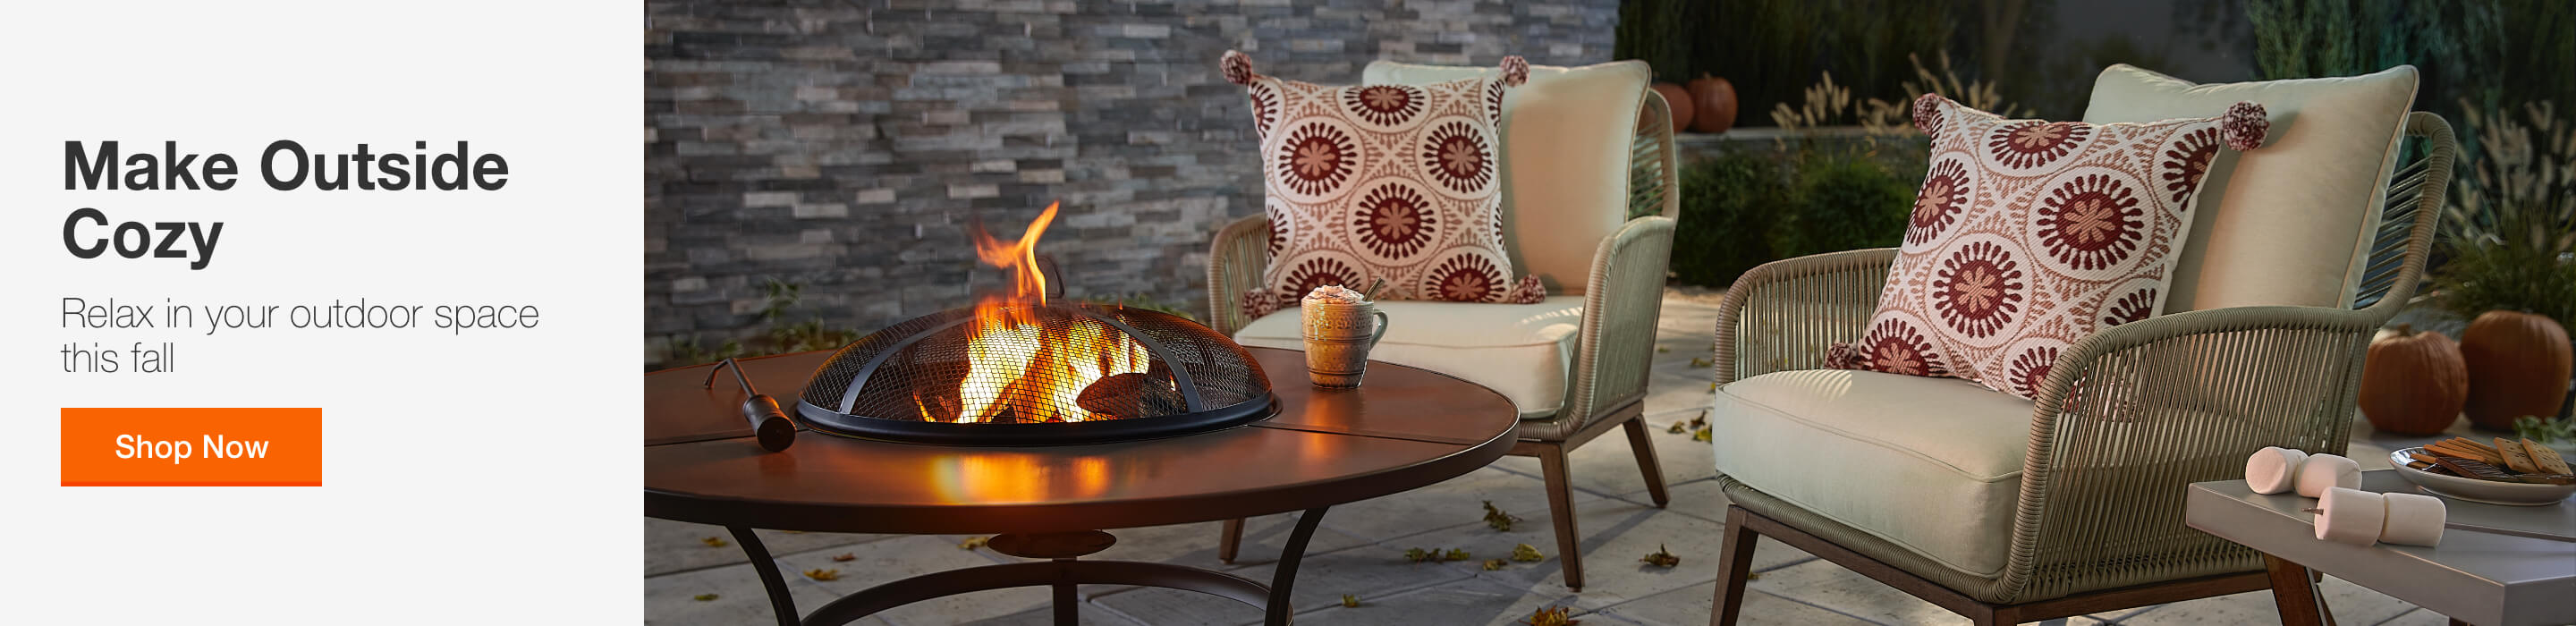 Make Outside Cozy - Relax in your outdoor space this fall. Shop Now